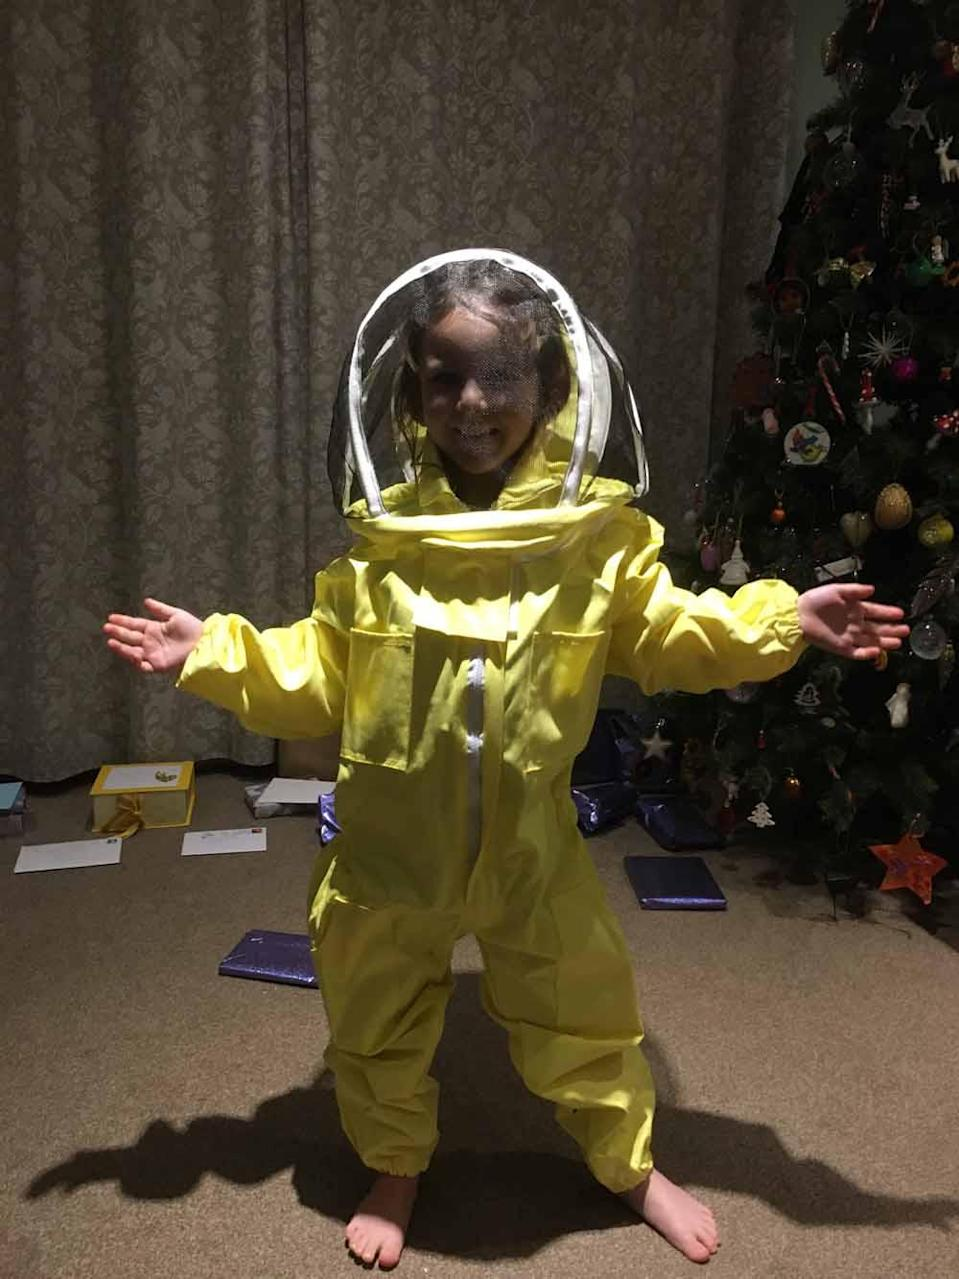 Sally bought Chloe a yellow bee suit for Christmas 2019 (Collect / PA Real Life).